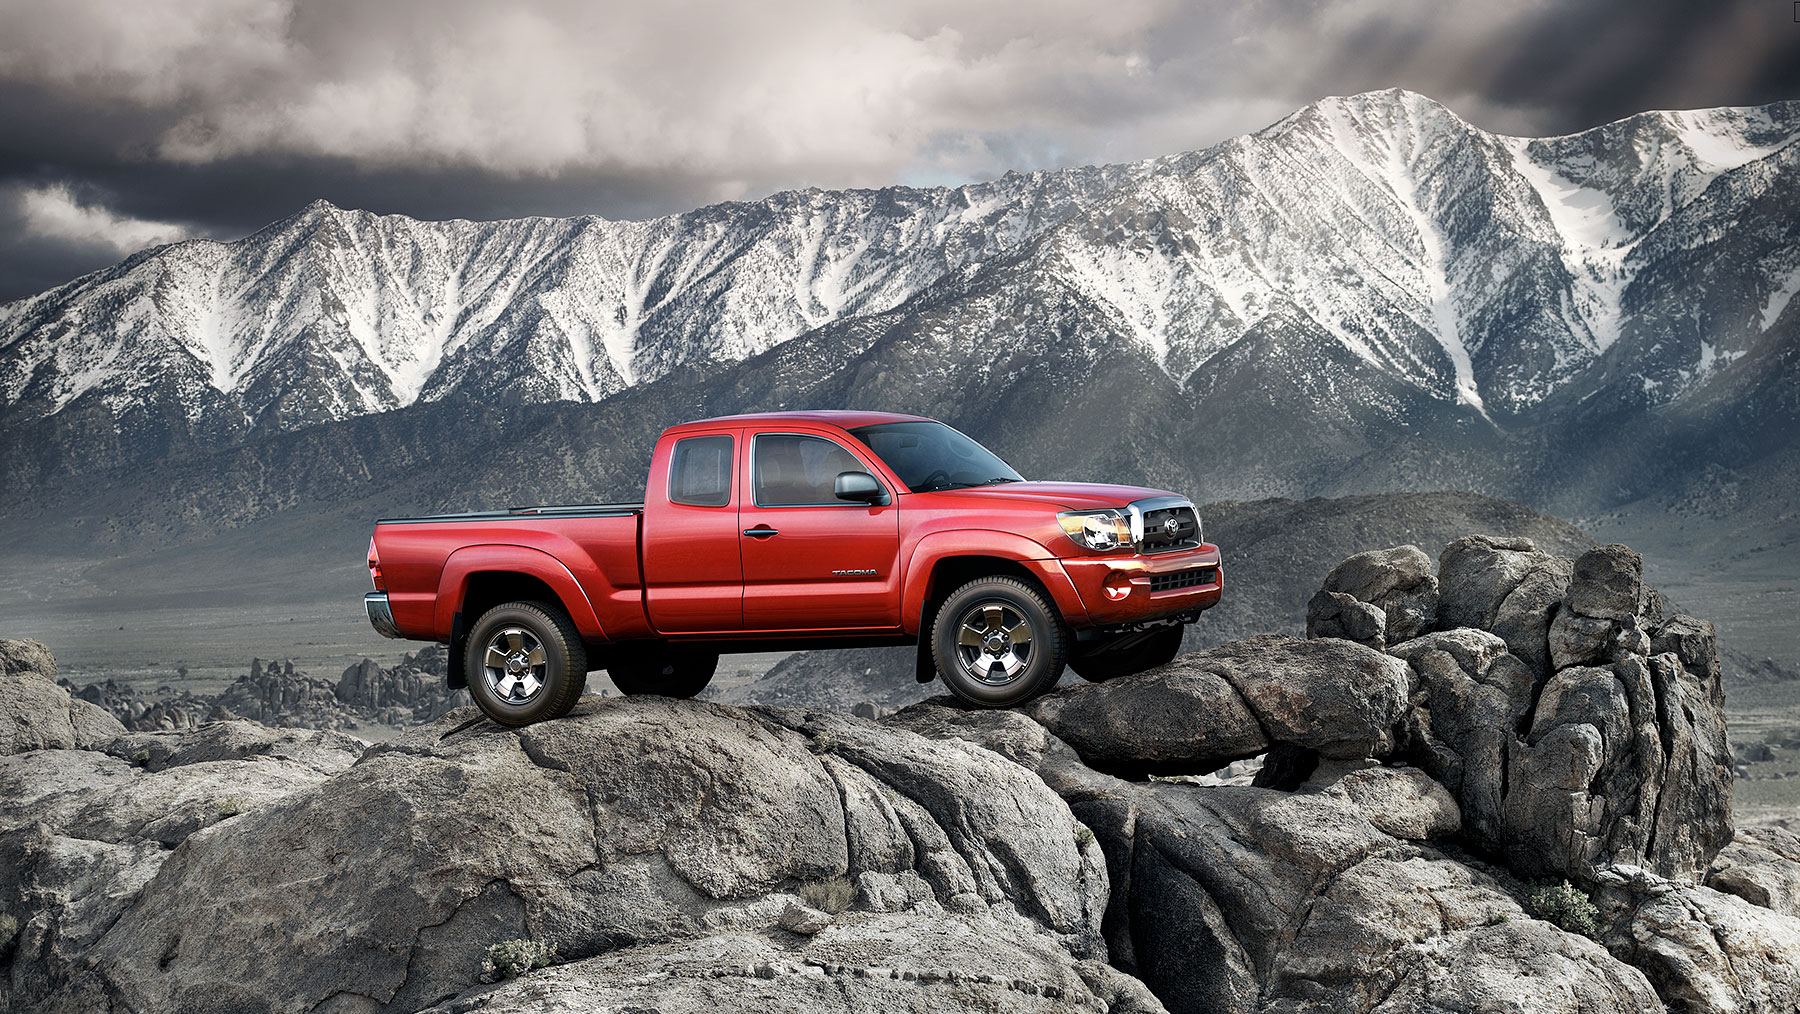 Toyota Tacoma Truck Automotive Photography| Dovis Bird Agency Reps